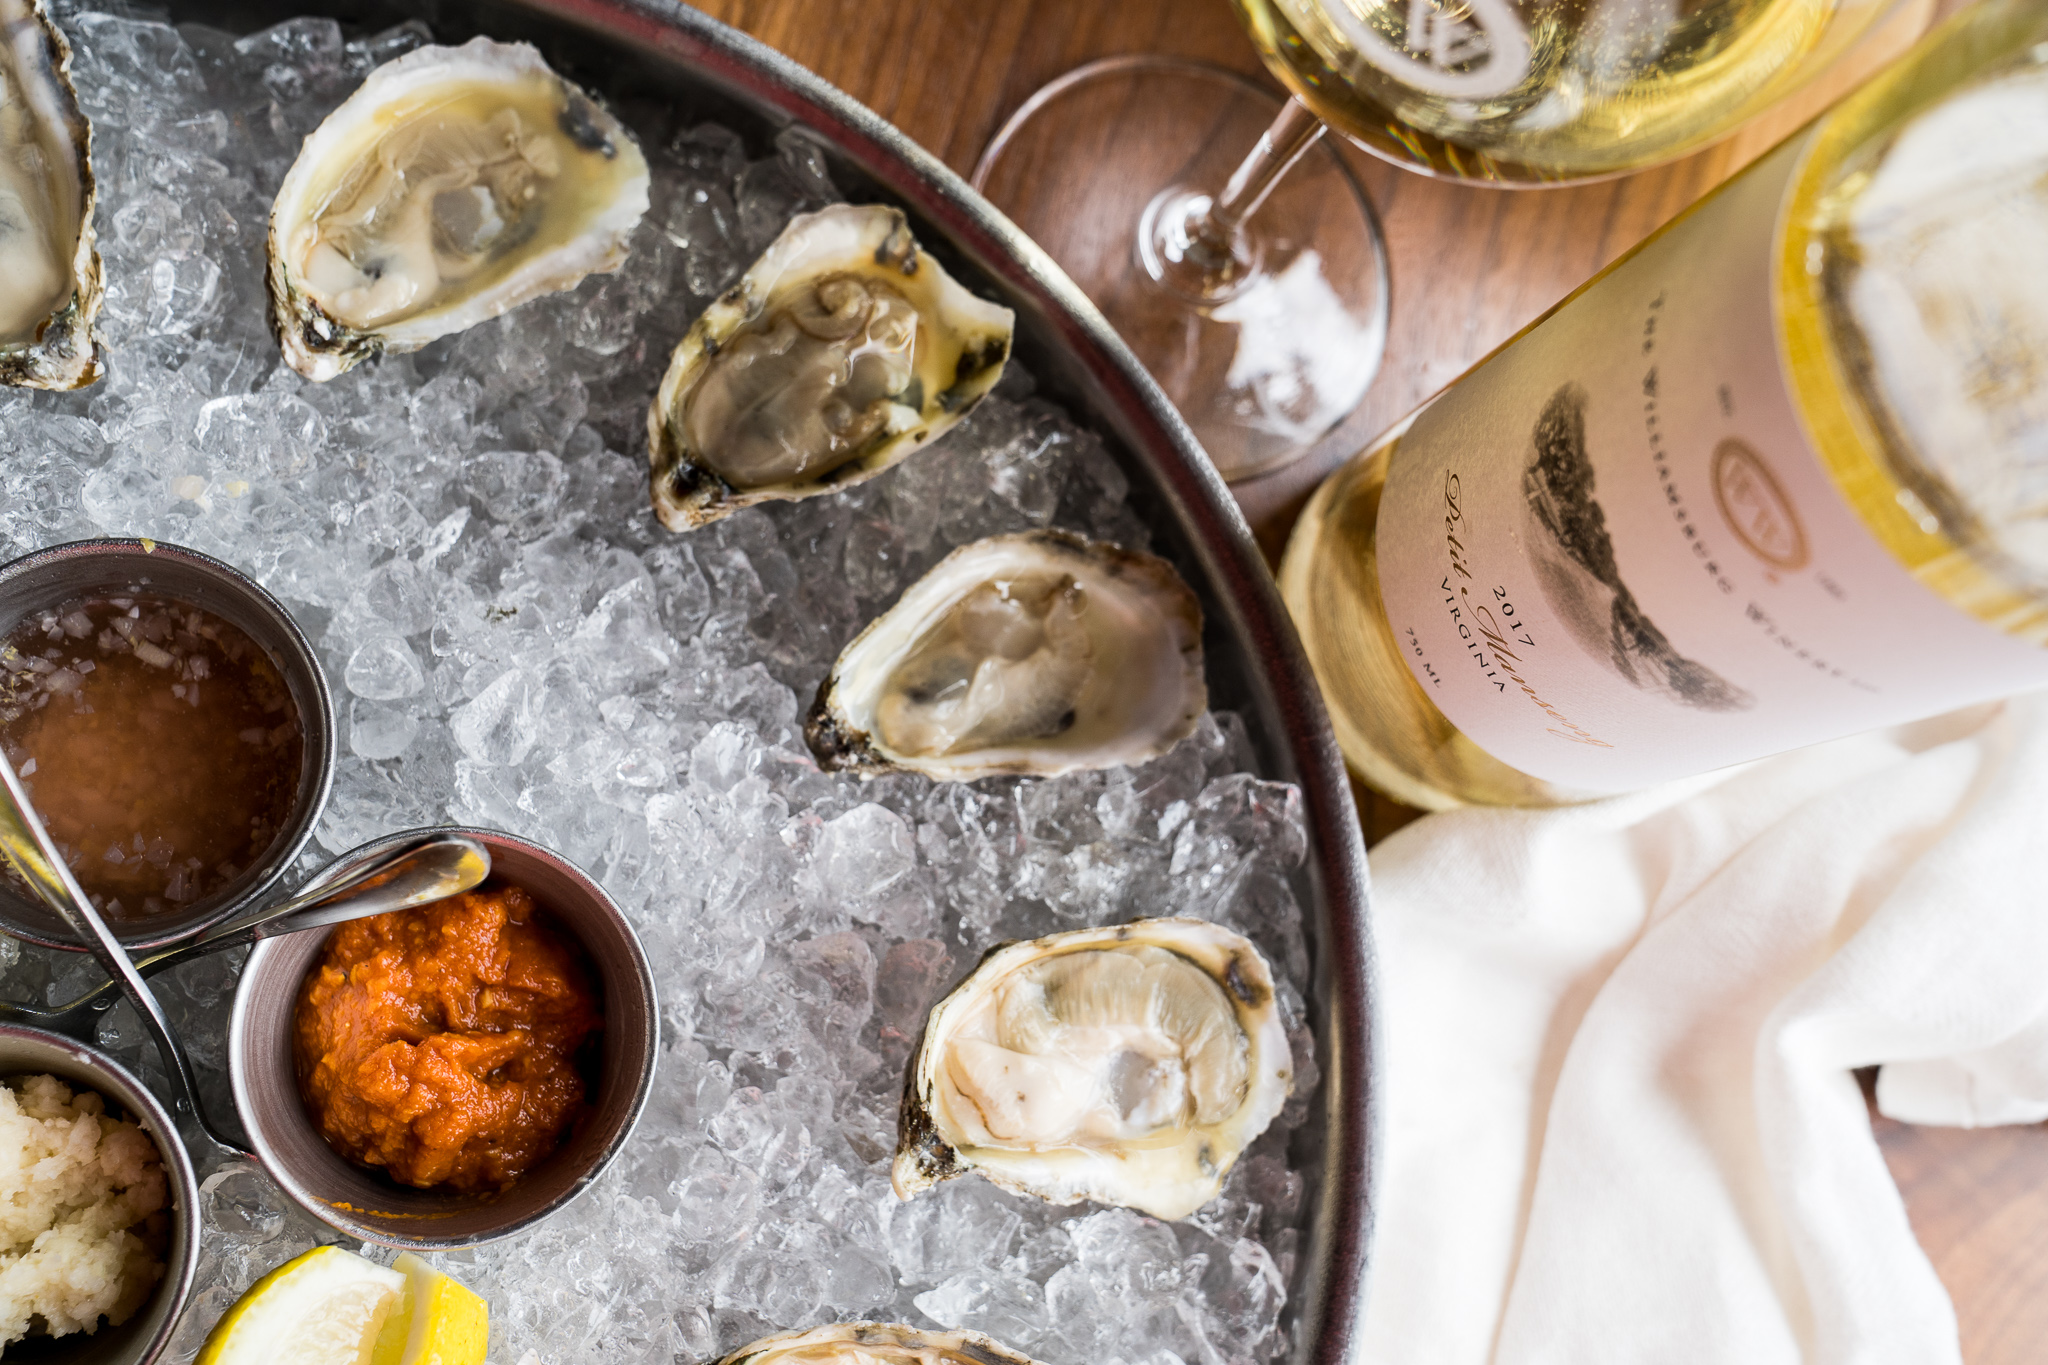 The Williamsburg Winery Oysters